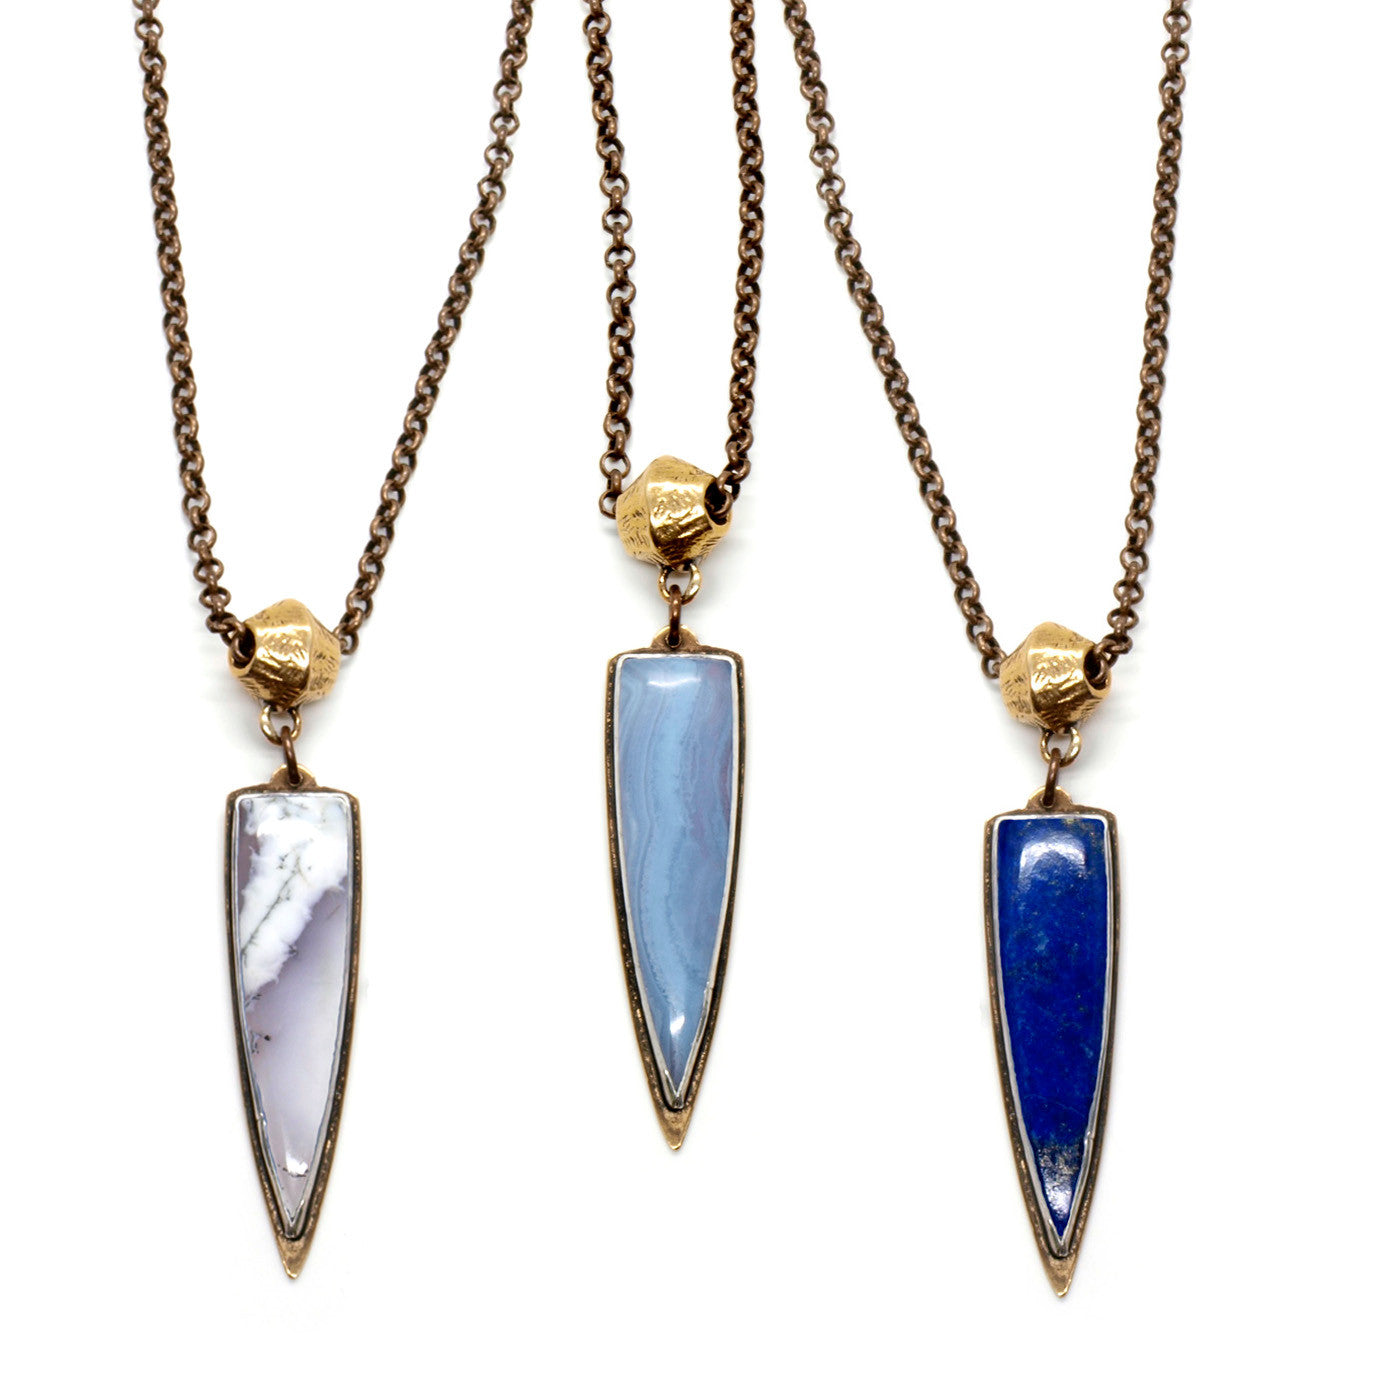 Mirage Necklace // Lapis